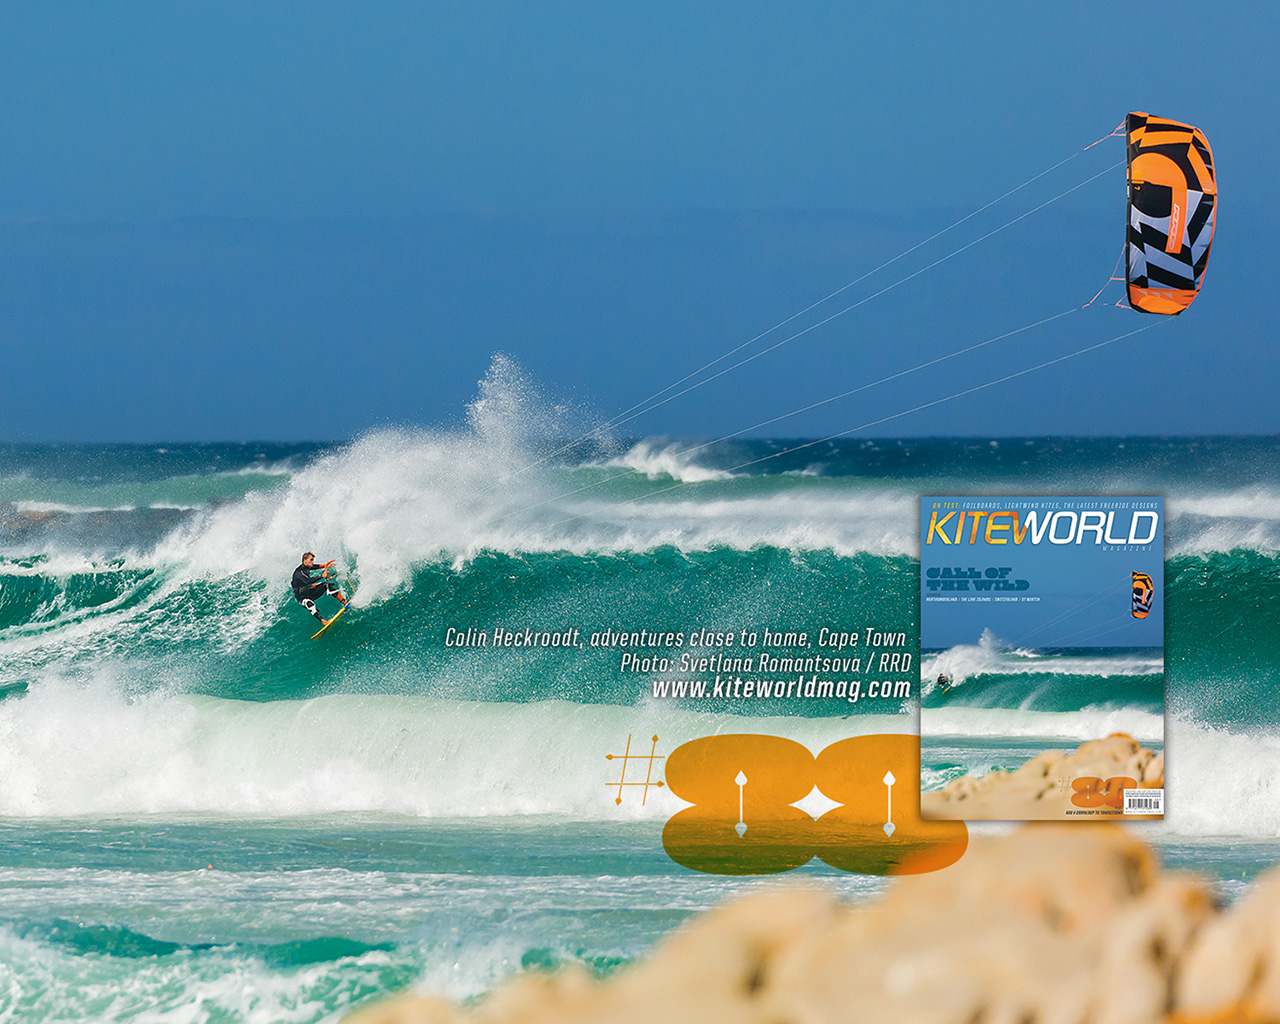 Colin Heckroodt, adventures close to home, Cape Town - Kiteworld issue 88 gallery